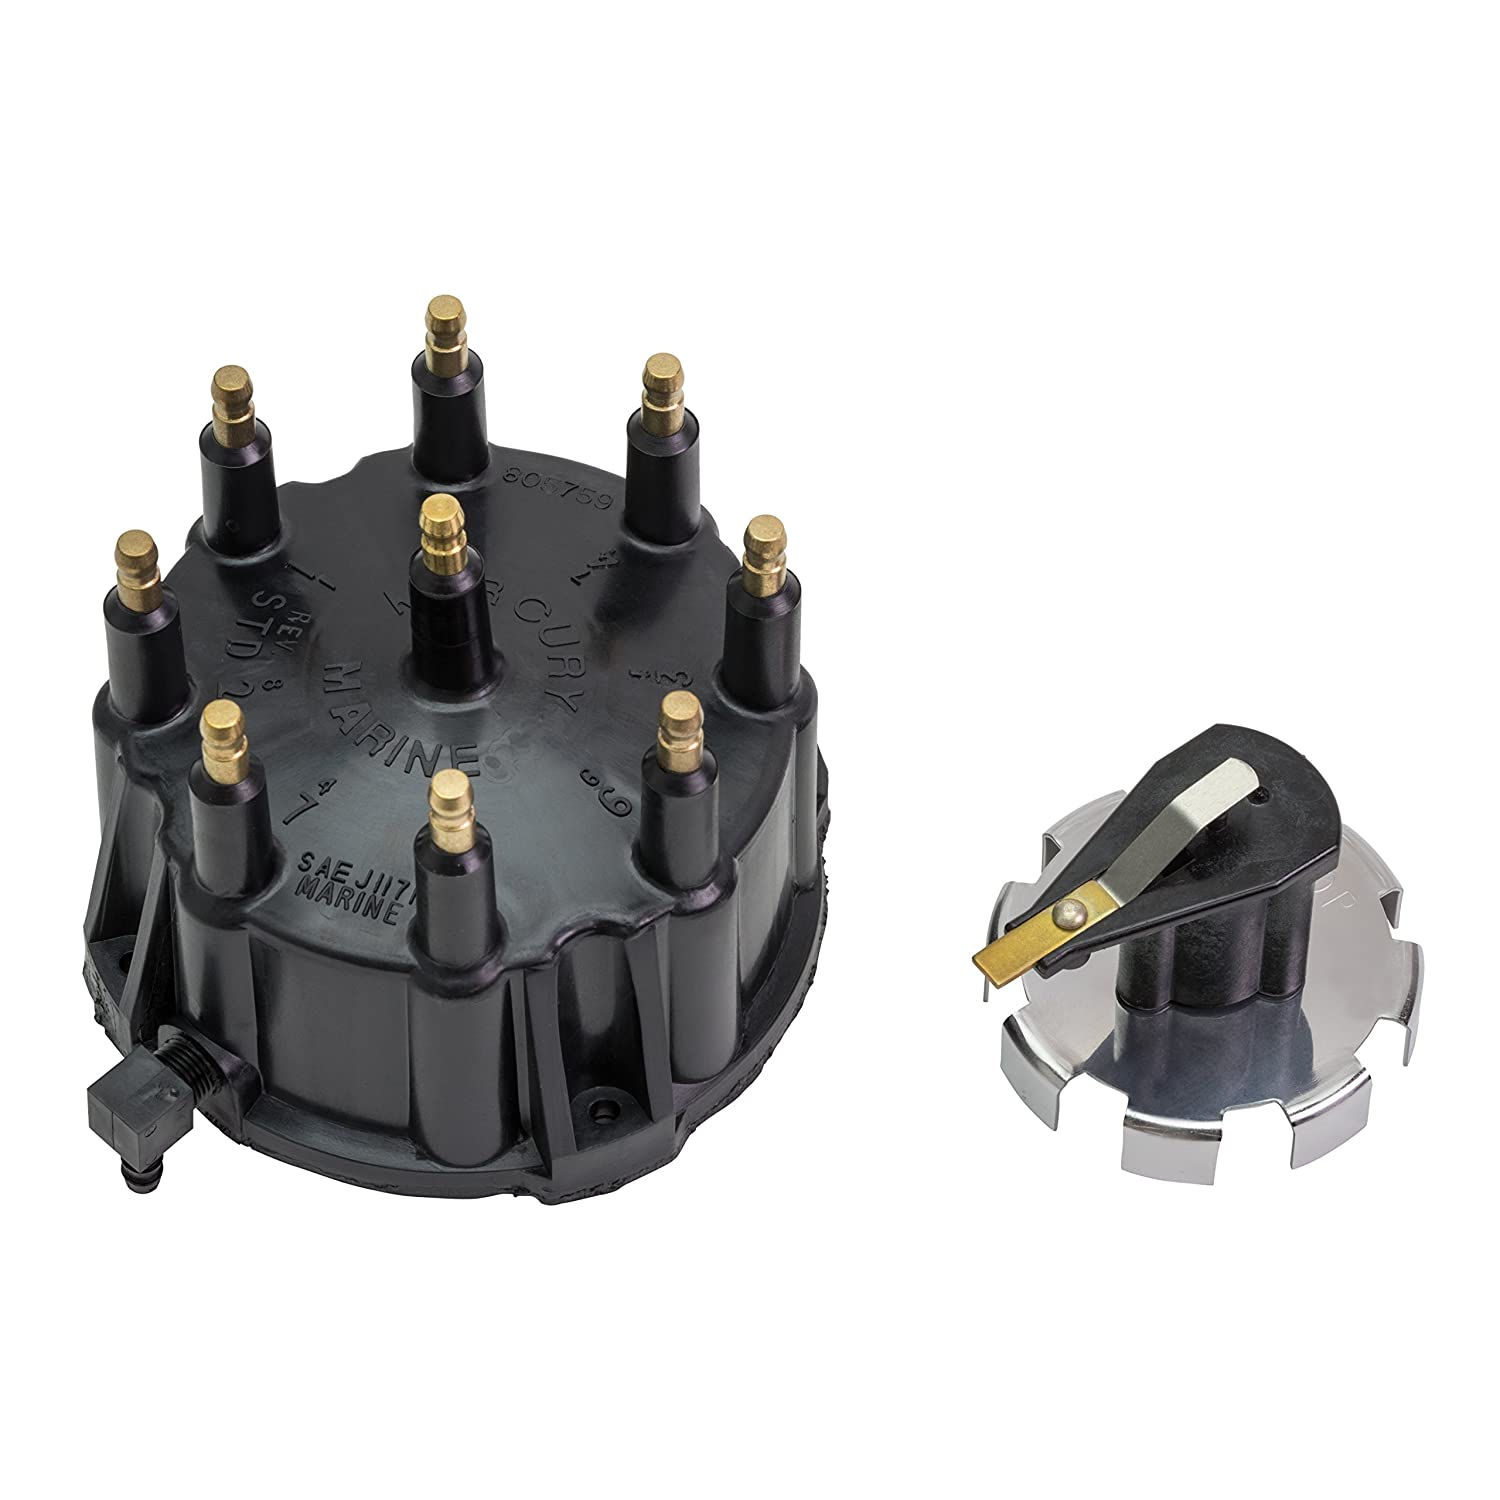 Quicksilver 805759Q3 Distributor Cap Kit - Marinized V-8 Engines by General Motors with Thunderbolt IV and V HEI Ignition Systems Mercury Marine